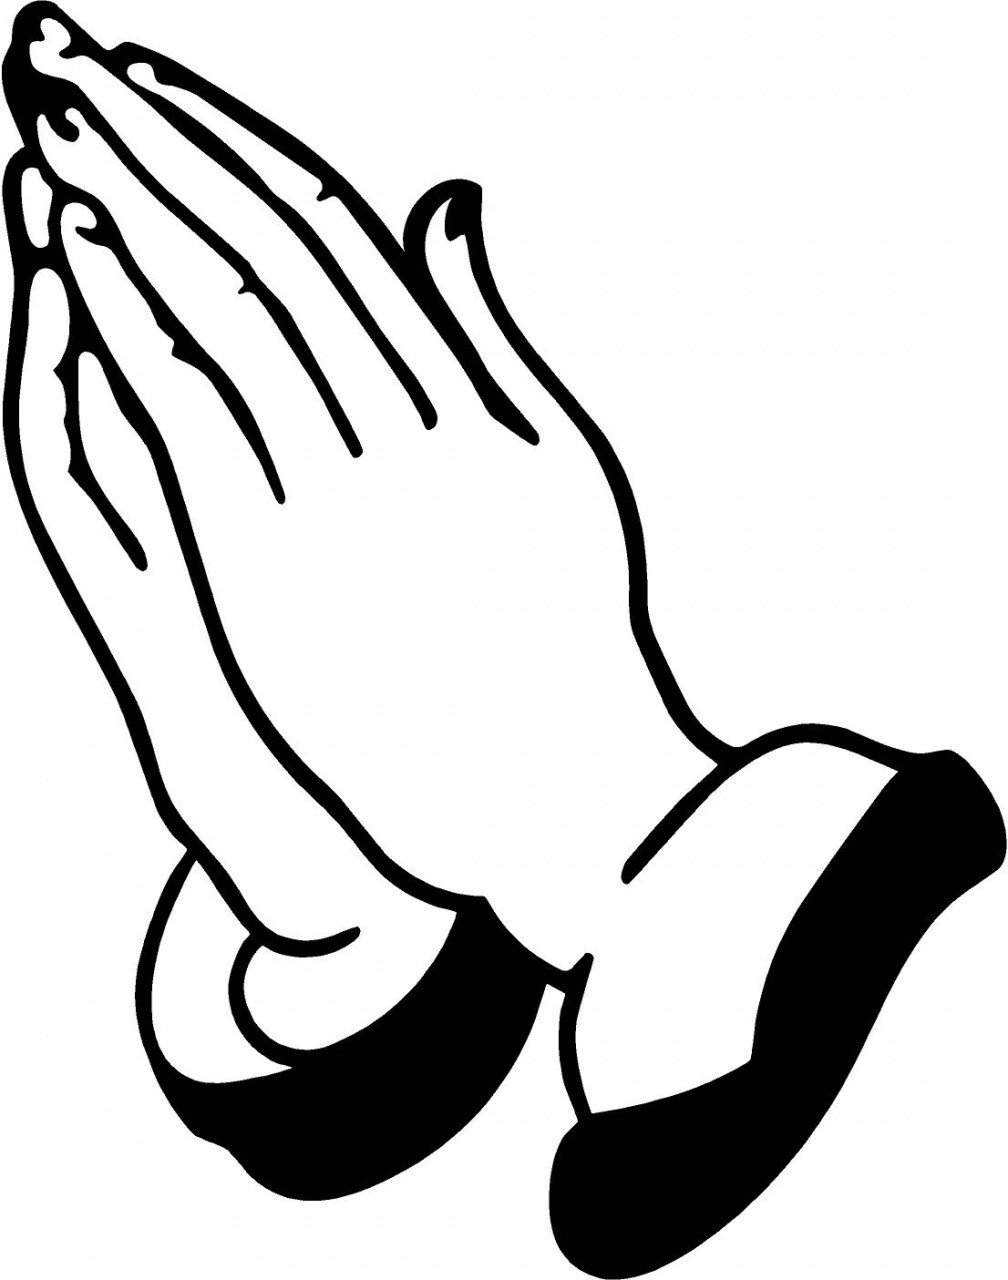 Prayer Hands Clipart Clipart .